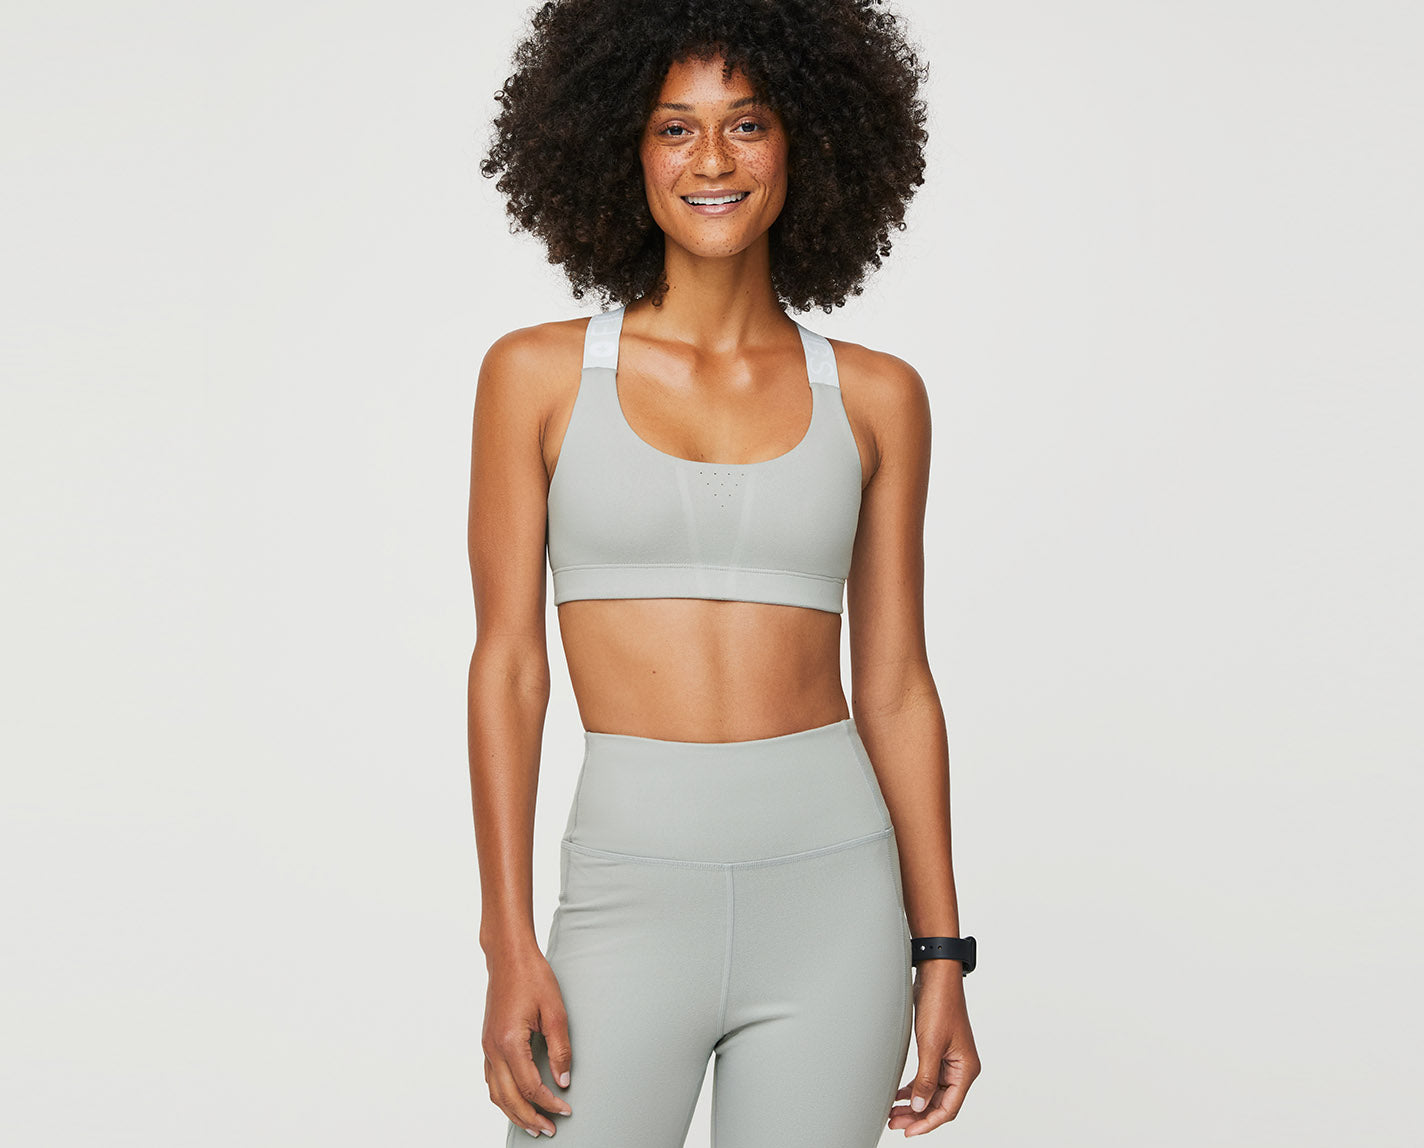 Peak performance from yoga to errands to shifts. The Performance Bra is designed with perforated detail for airflow and features our proprietary FIONdry fabric.